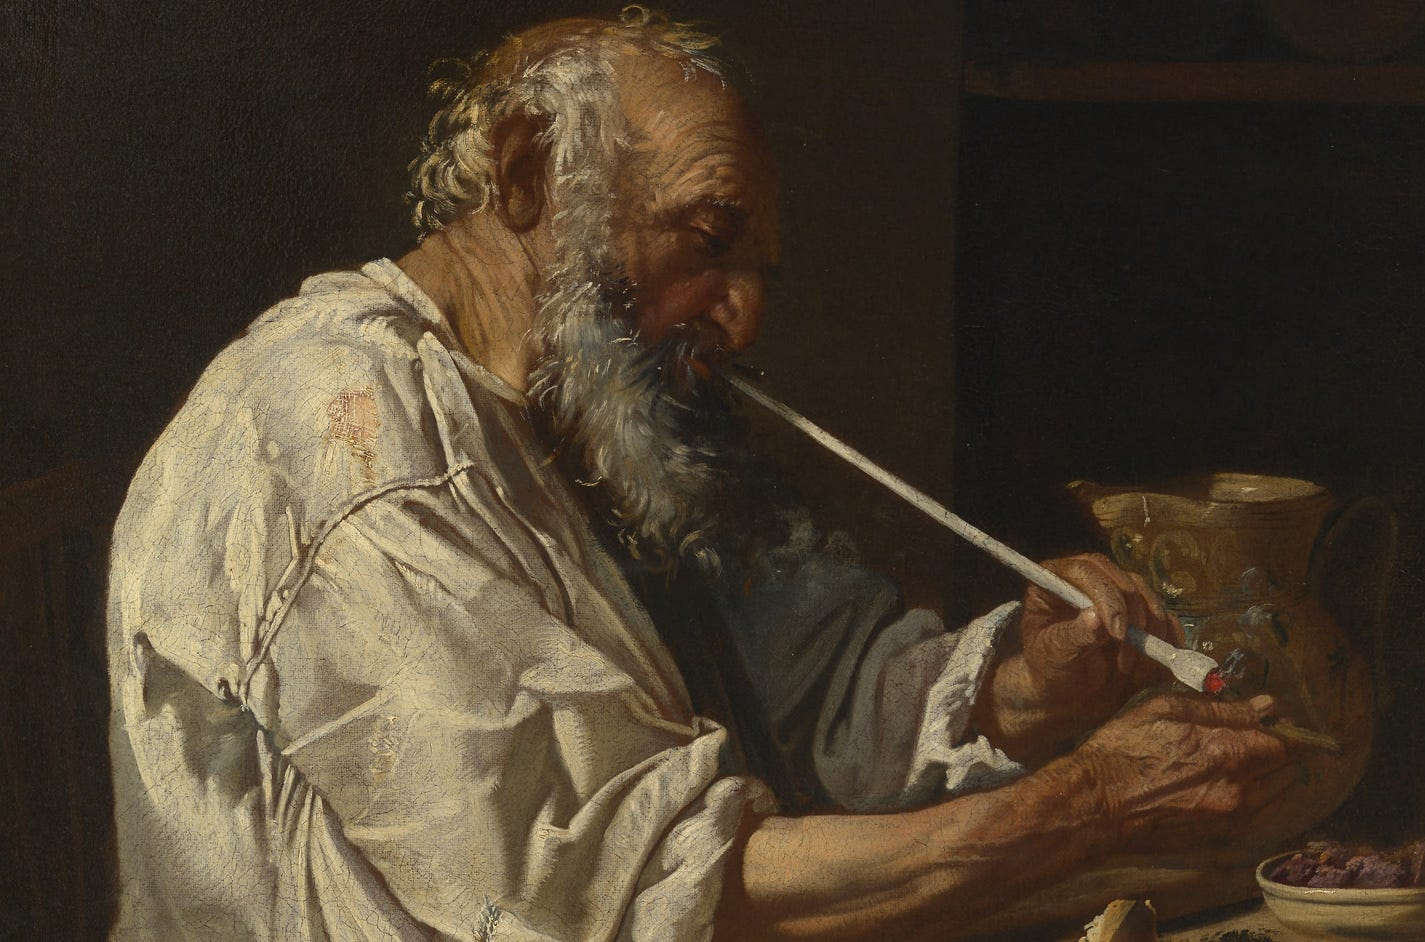 Old wizard smoking a pipe